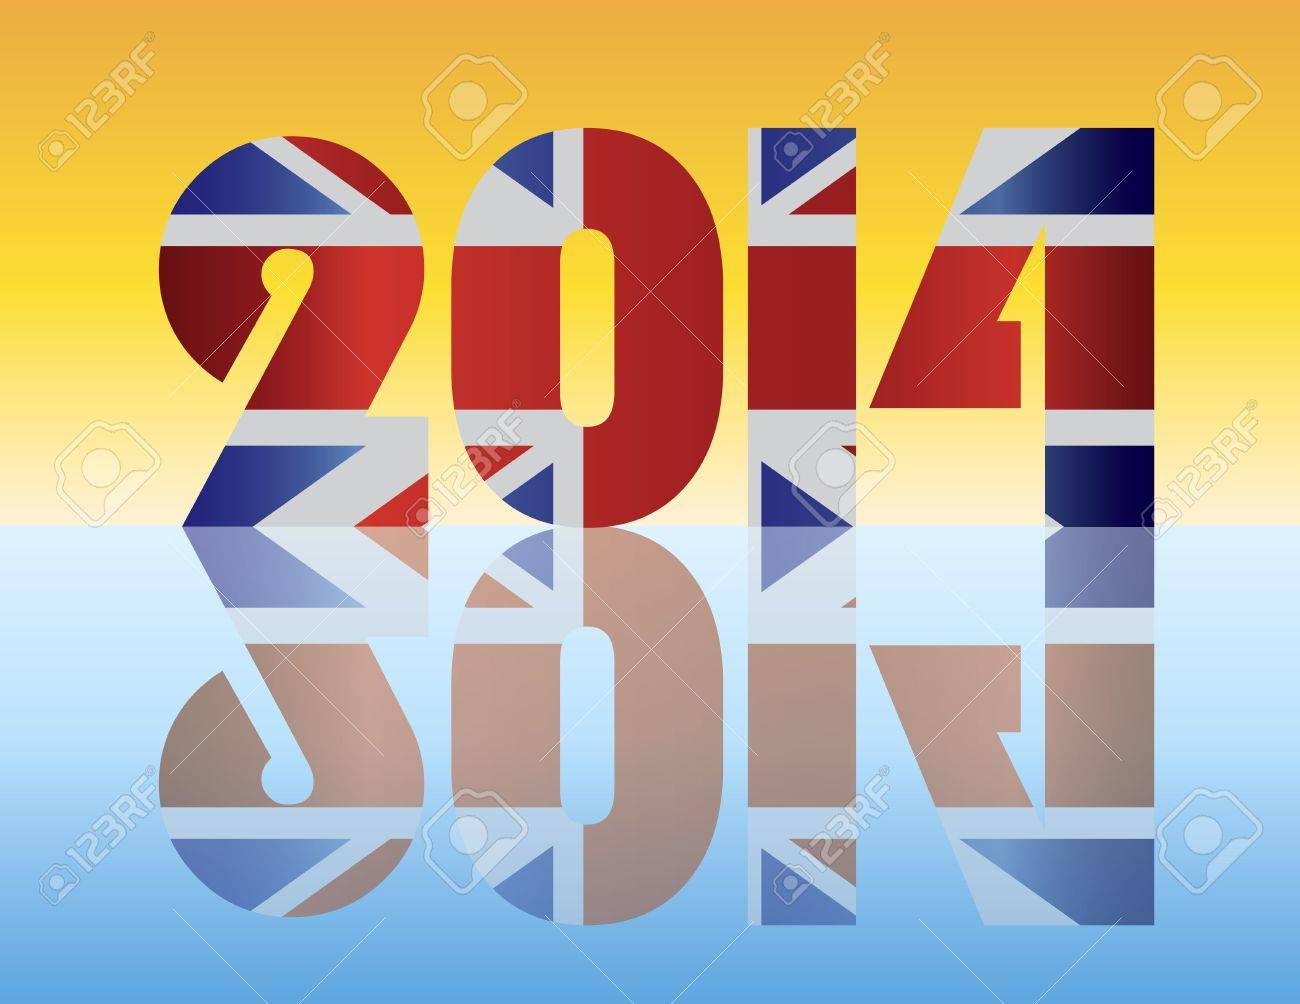 Happy New Year London England 2014 SIlhouette with Union Jack Flag Illustration Stock Vector - 17324492